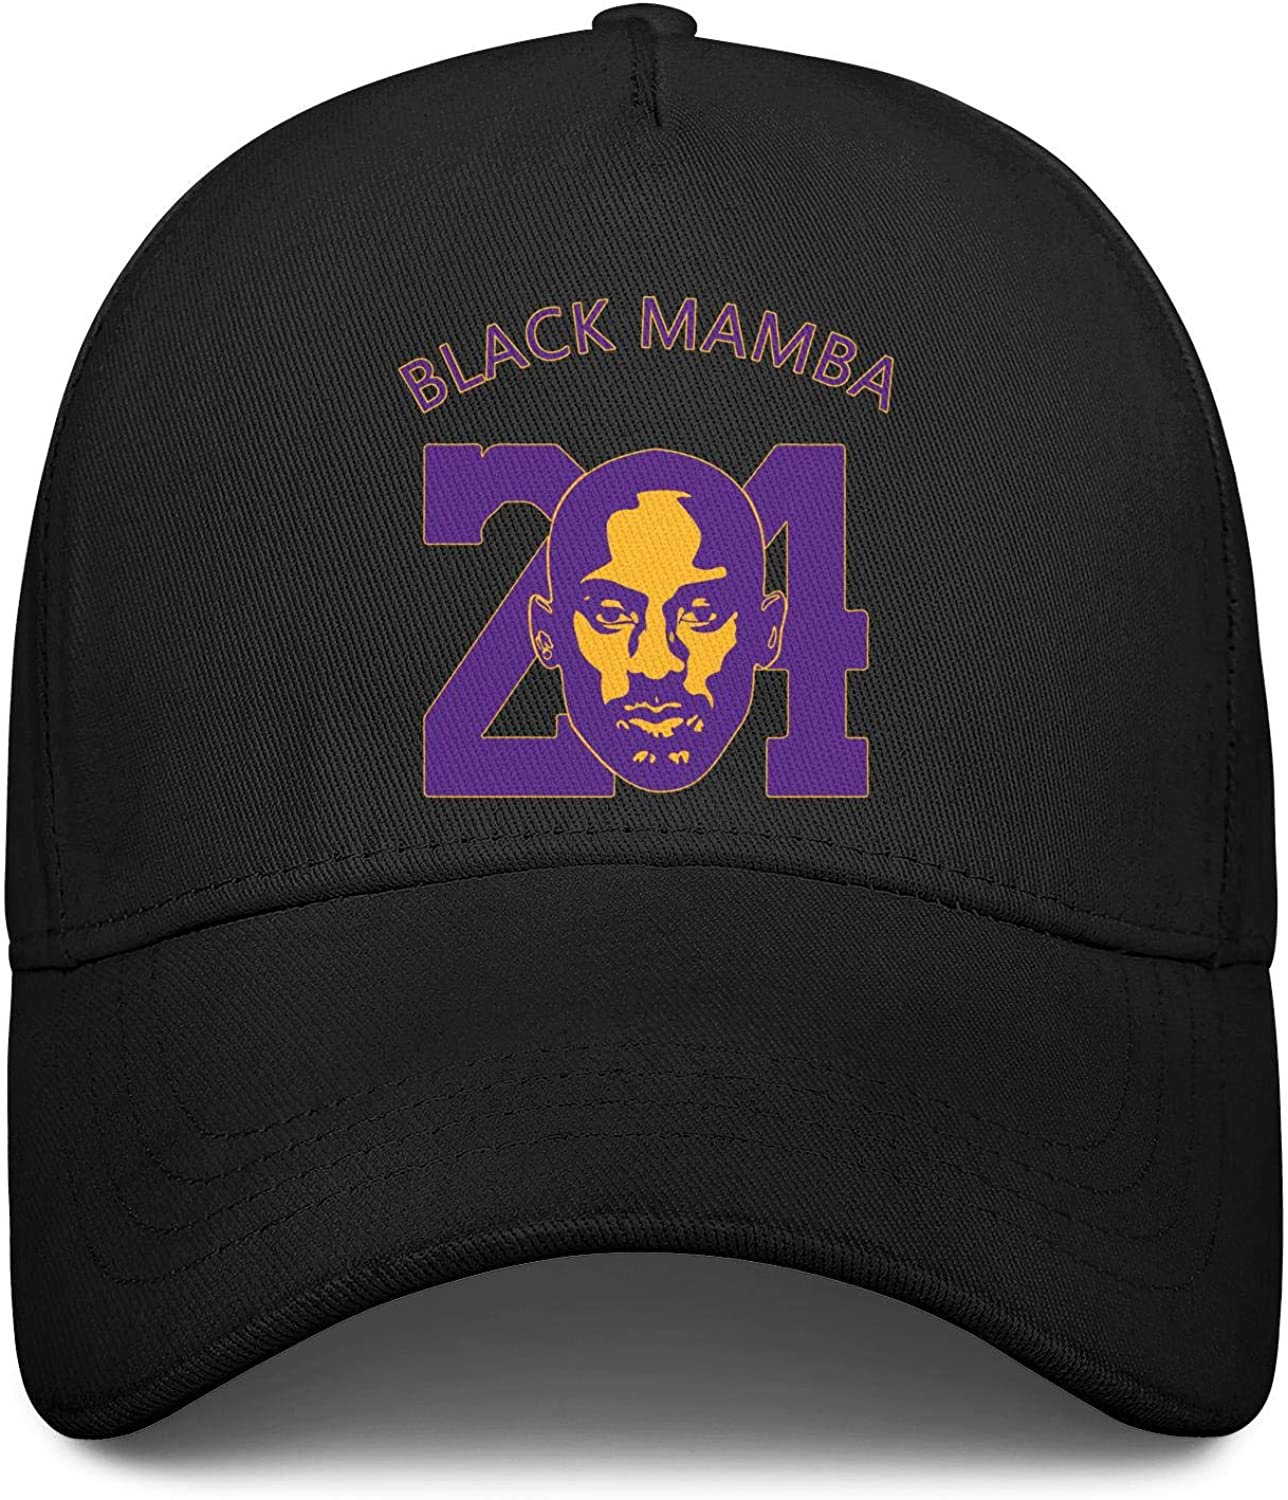 BeercsDD2 Mens Fitted Hat Adjustable Basketball Player Mamba 24 Personalized Plain Baseball Caps